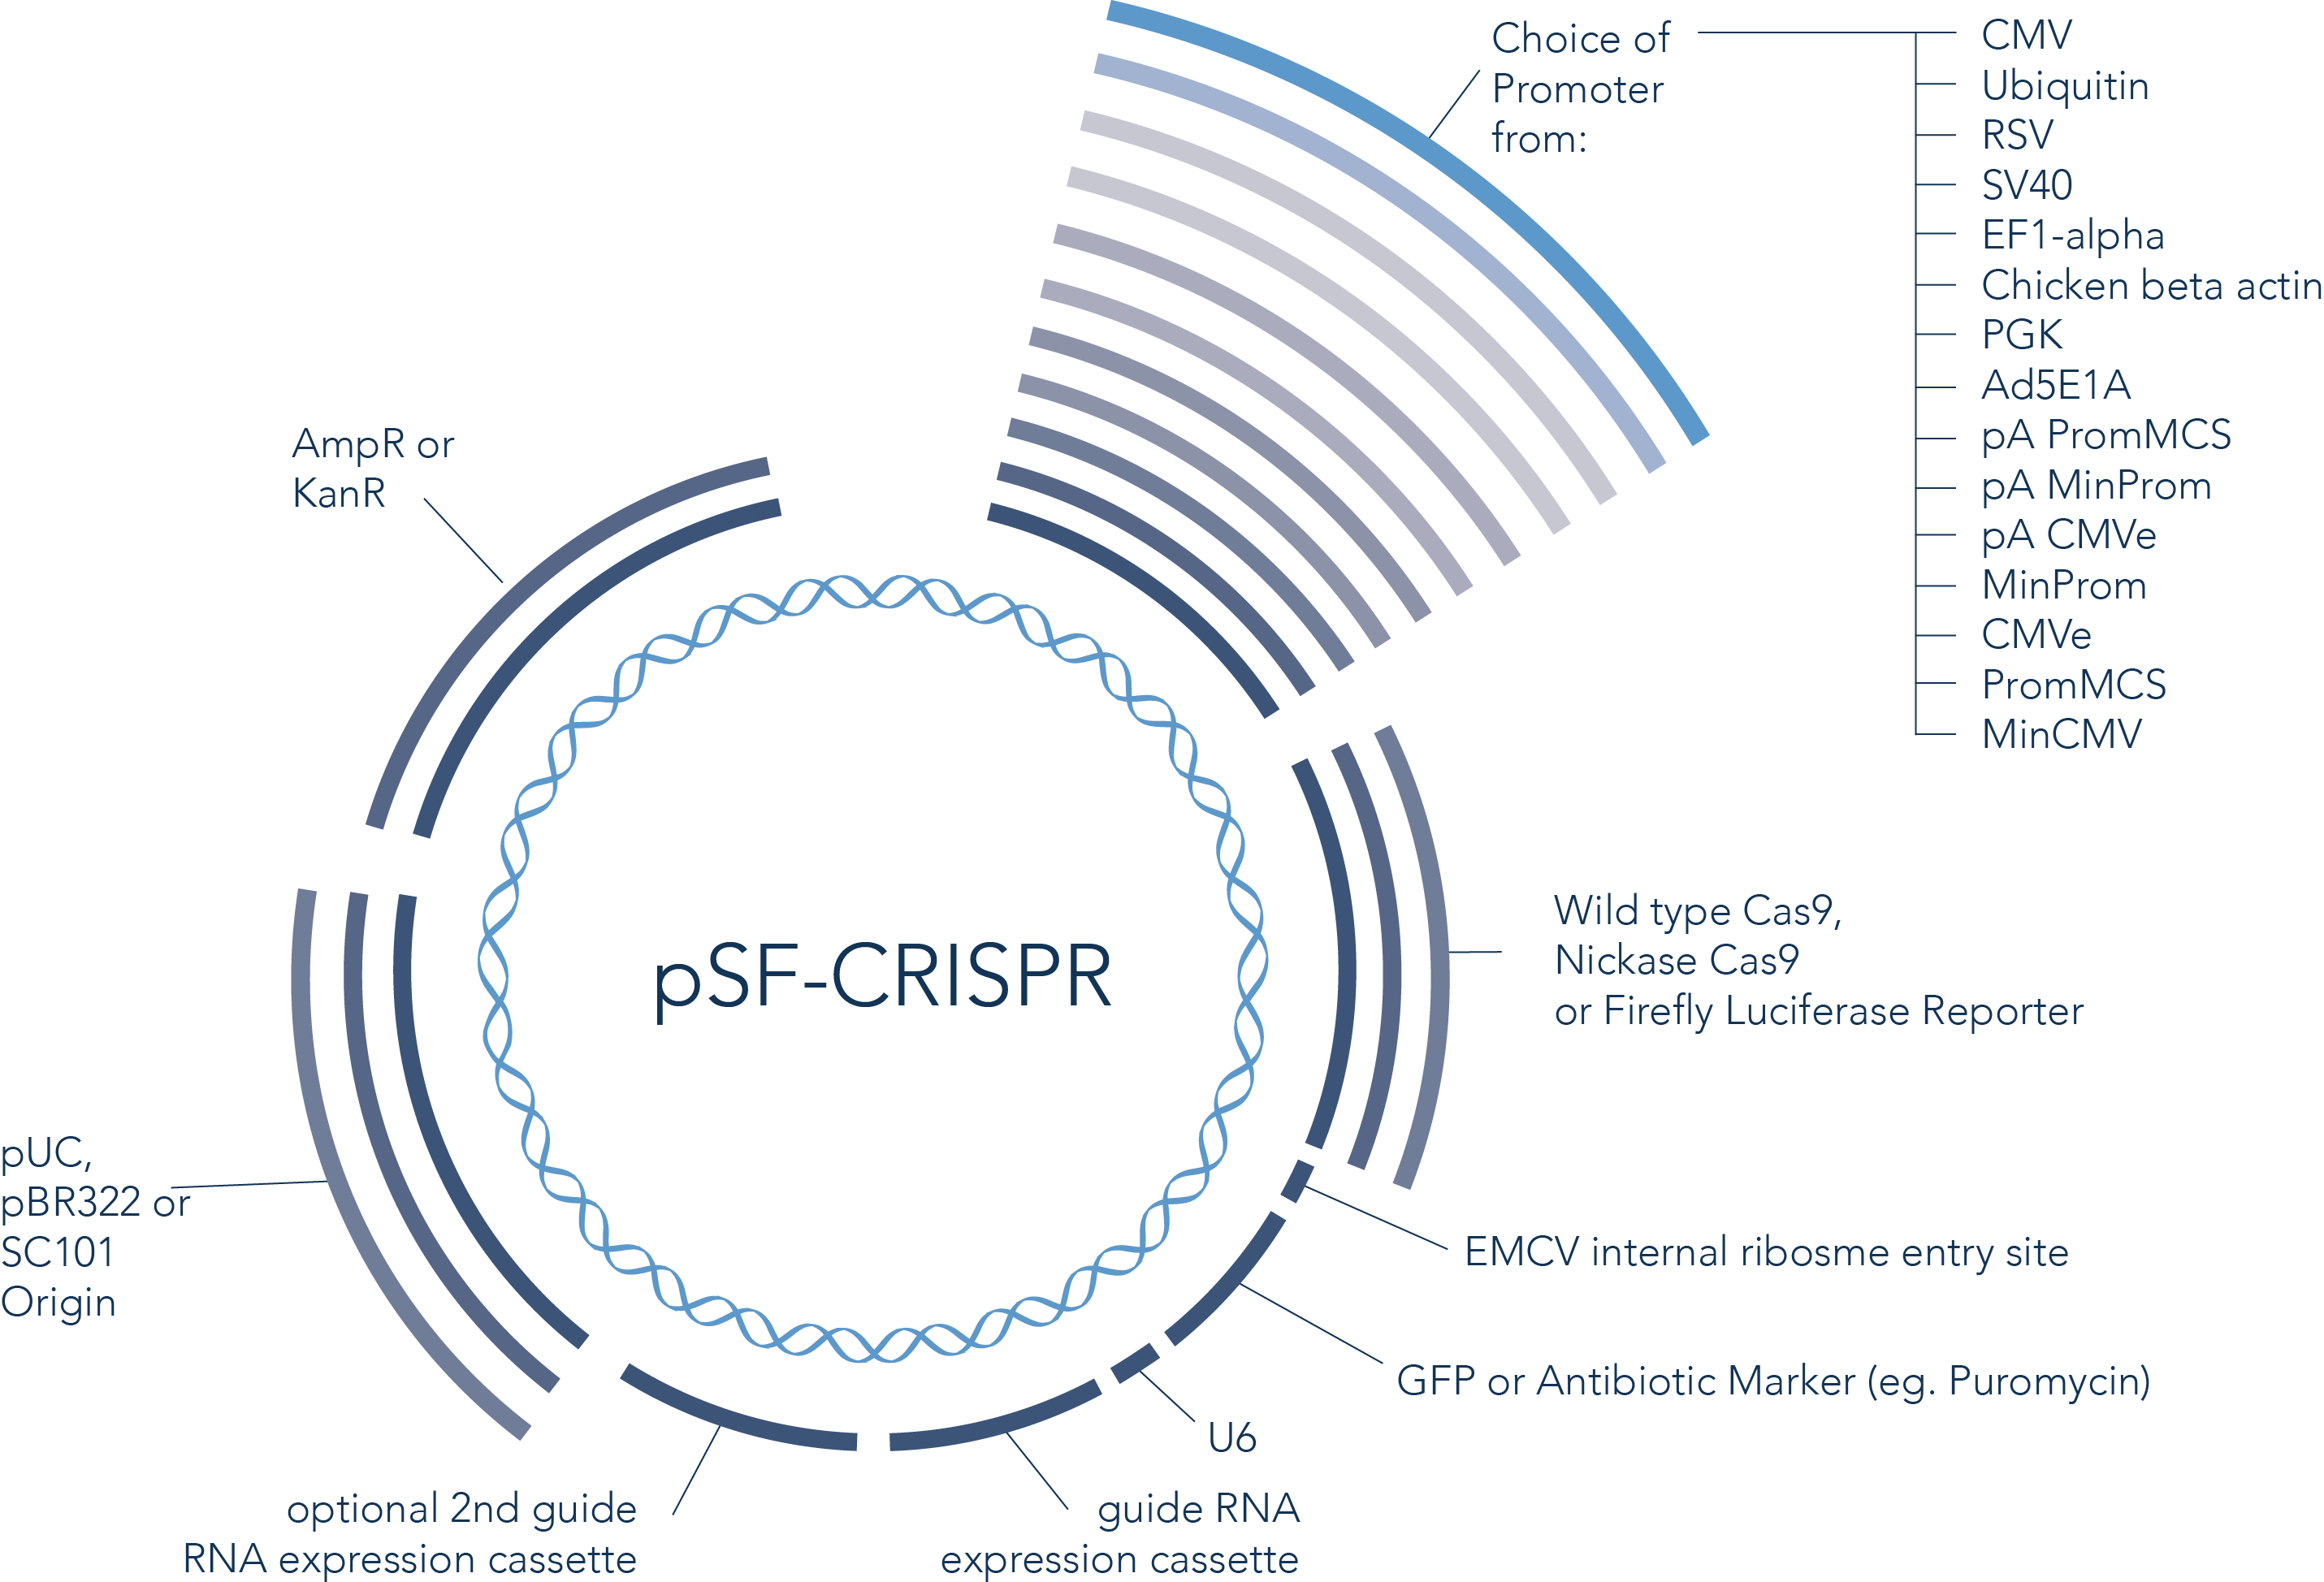 Overview of Crispr Vector